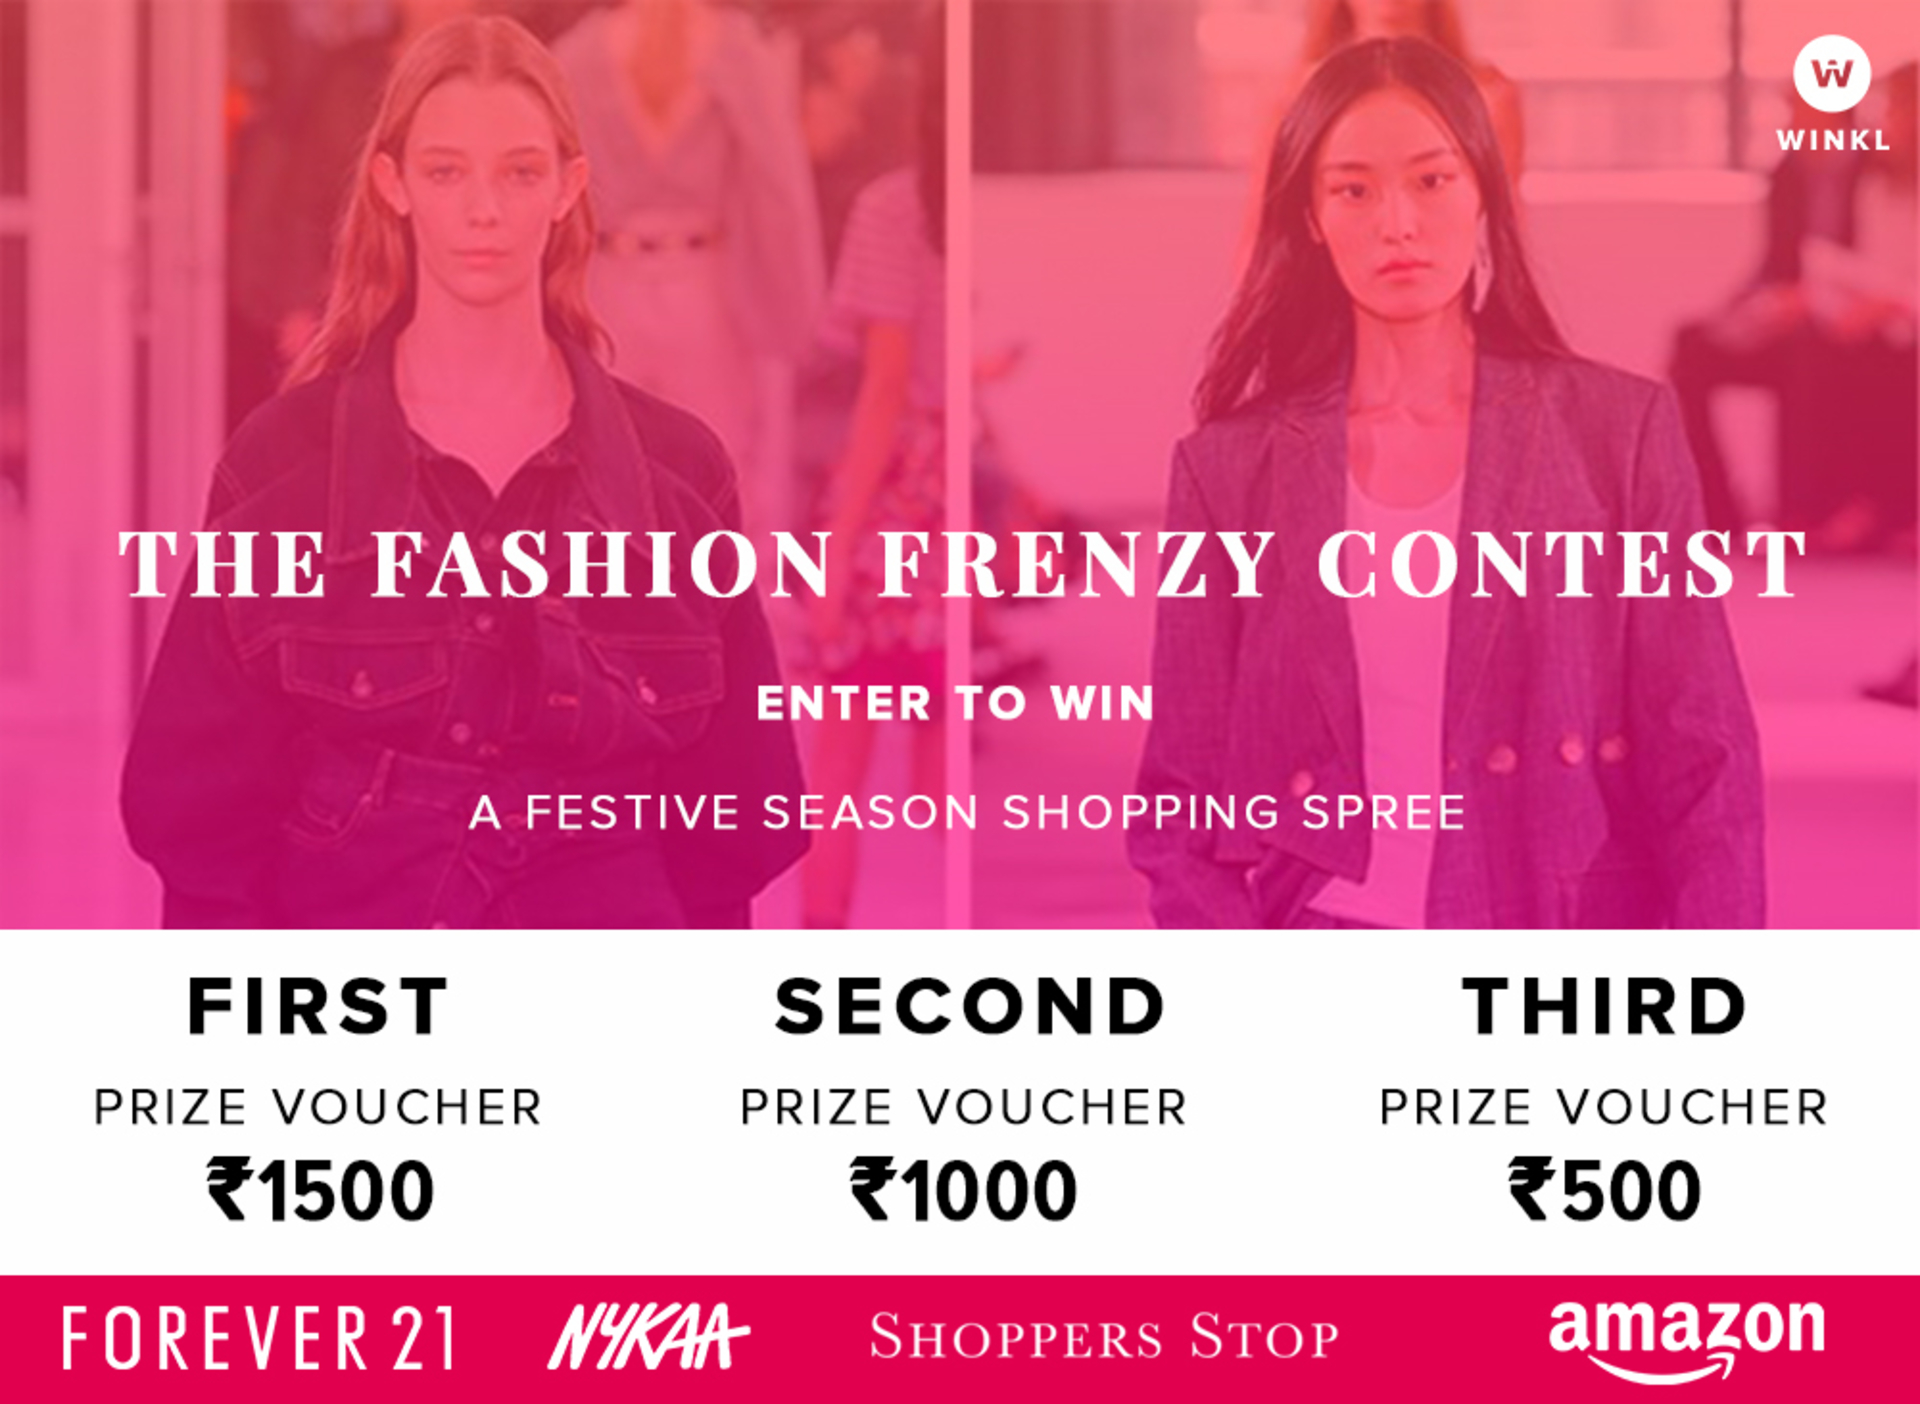 The Fashion Frenzy Contest image